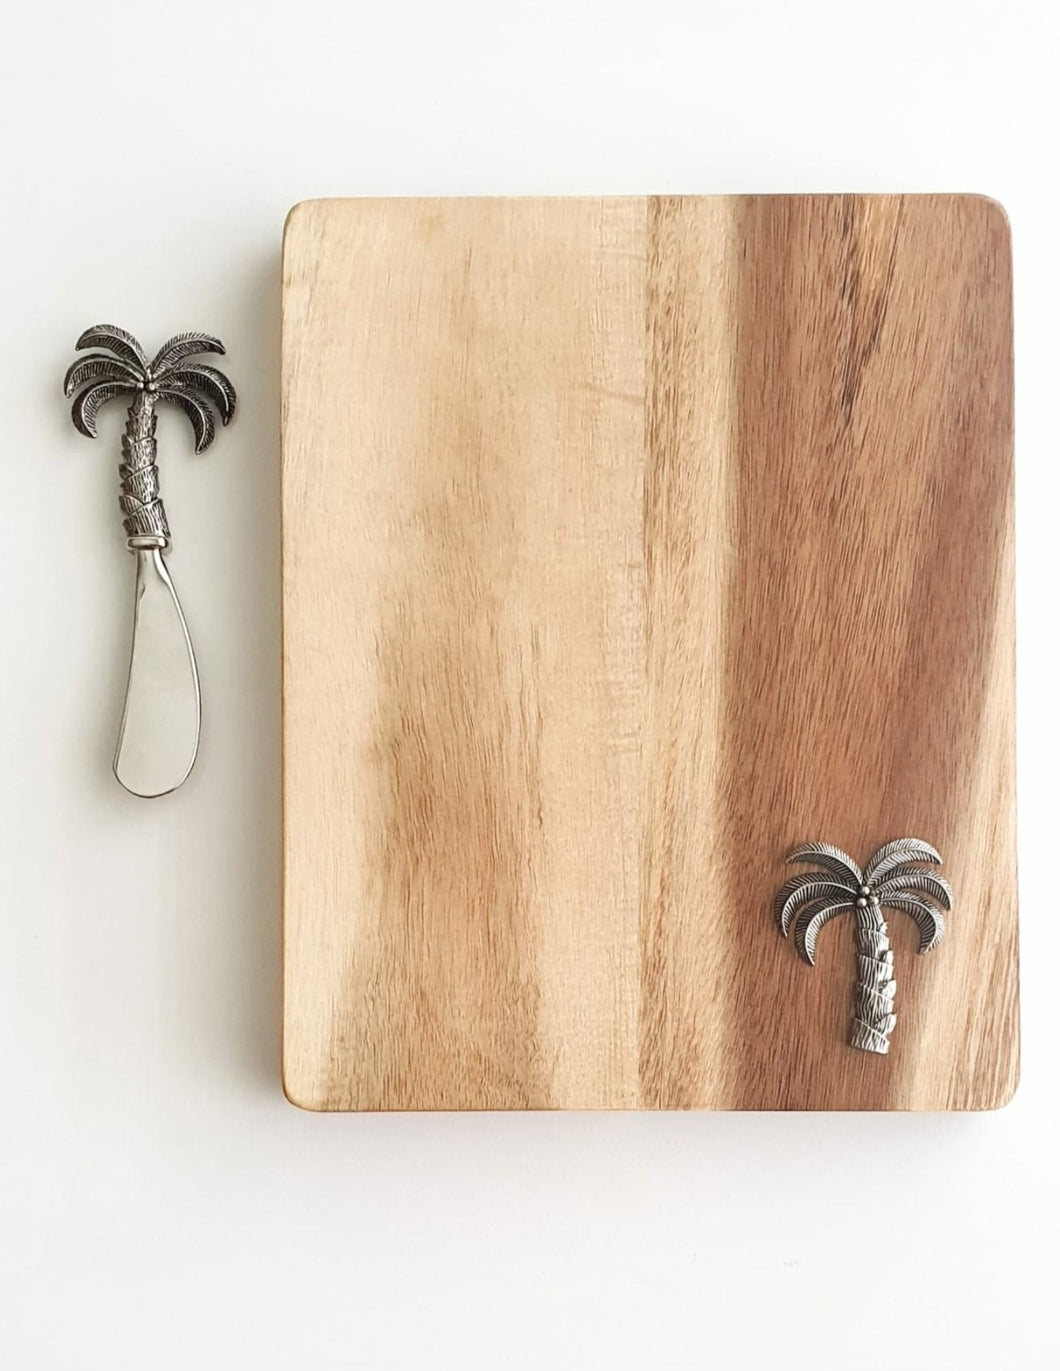 ACACIA CHEESEBOARD AND PALM TREE SPREADER